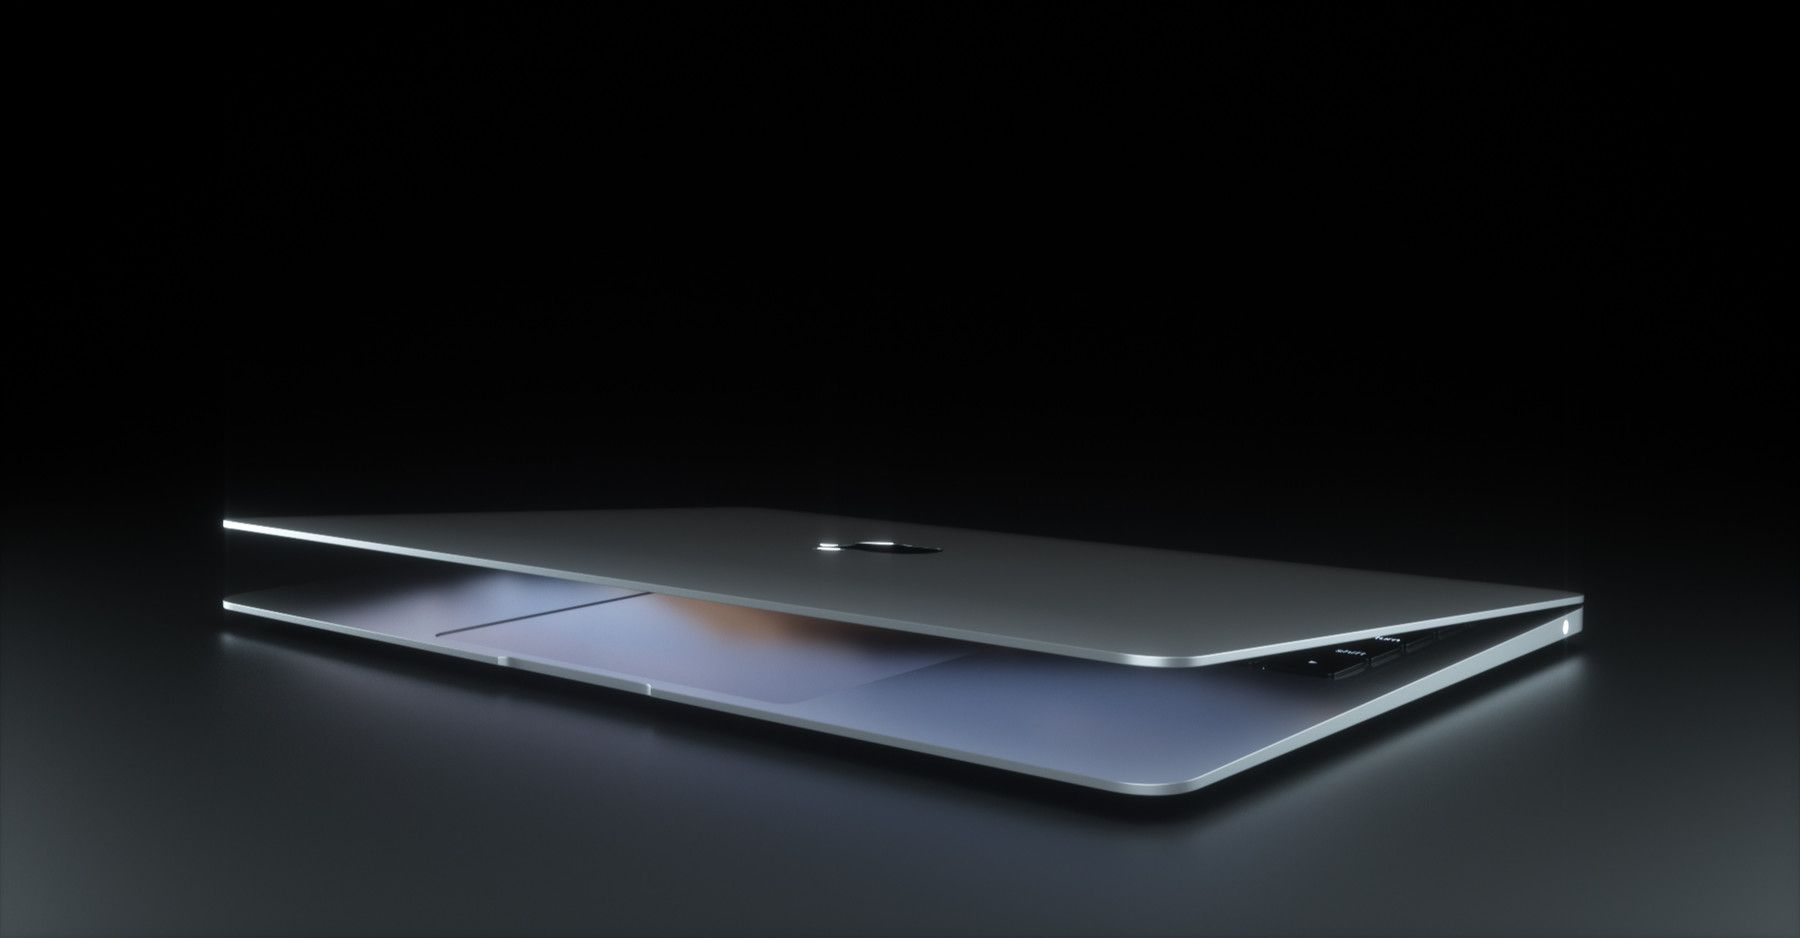 Hard Surface High Poly Modeling And Product Rendering Cinema 4d Styleframe Cinema4d Apple Macbook Macbookair Lapt Macbook Air New Macbook Air Macbook